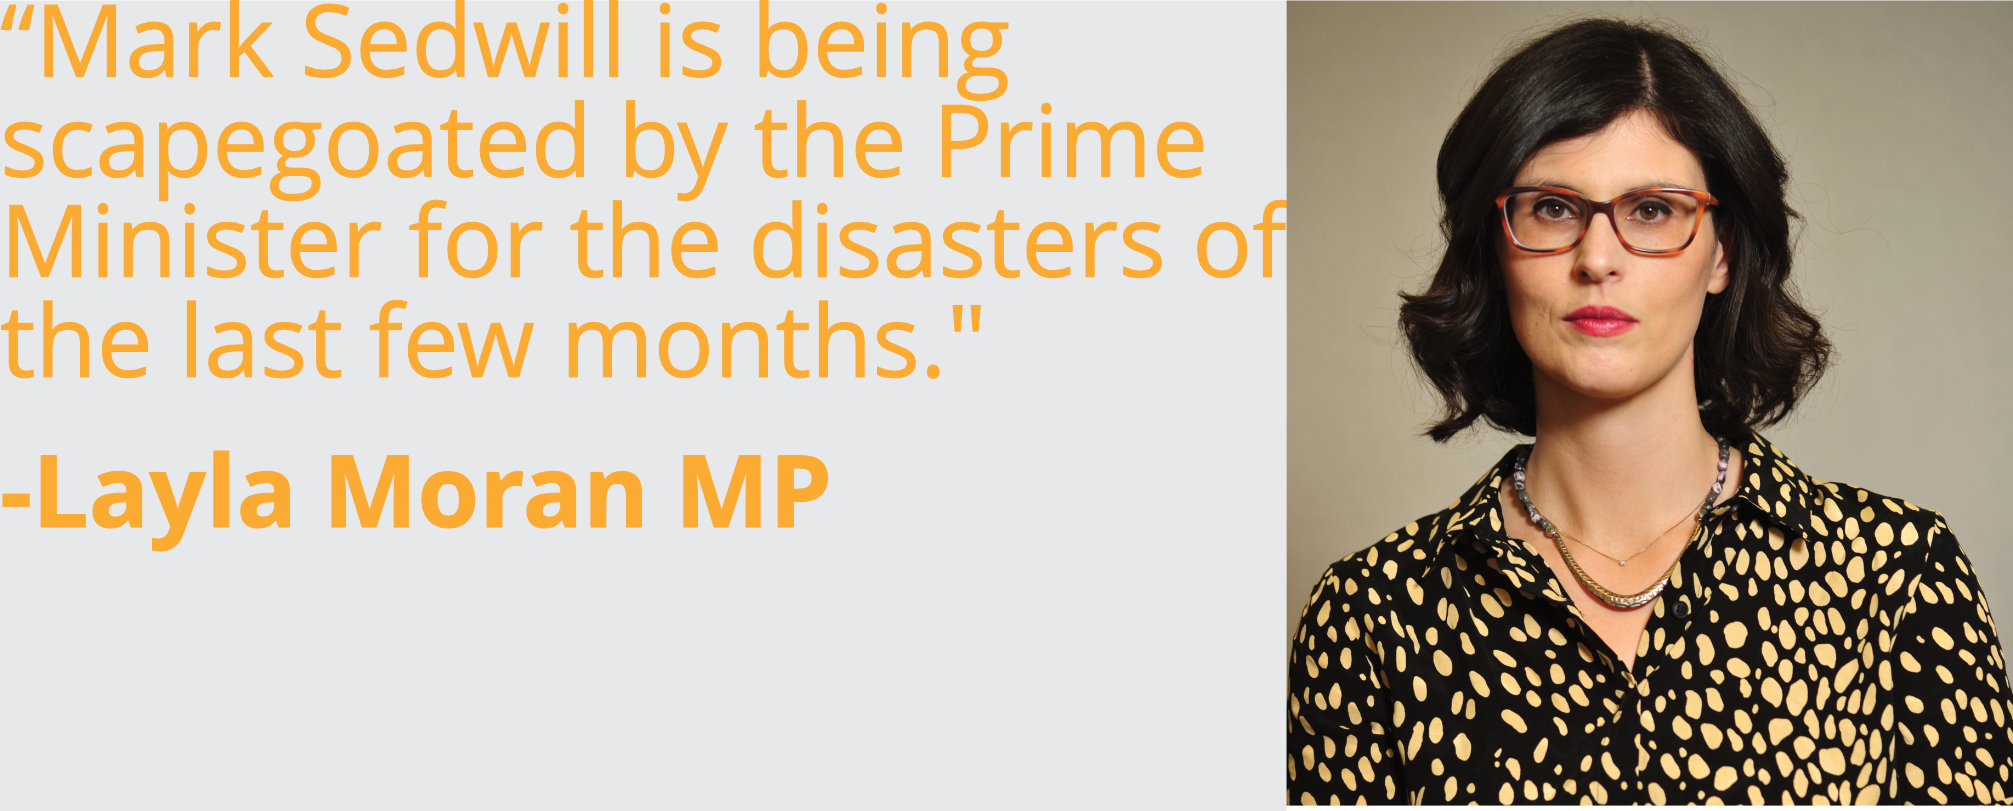 Mark Sedwill is being scapegoated by the Prime Minister for the disasters of the last few months.